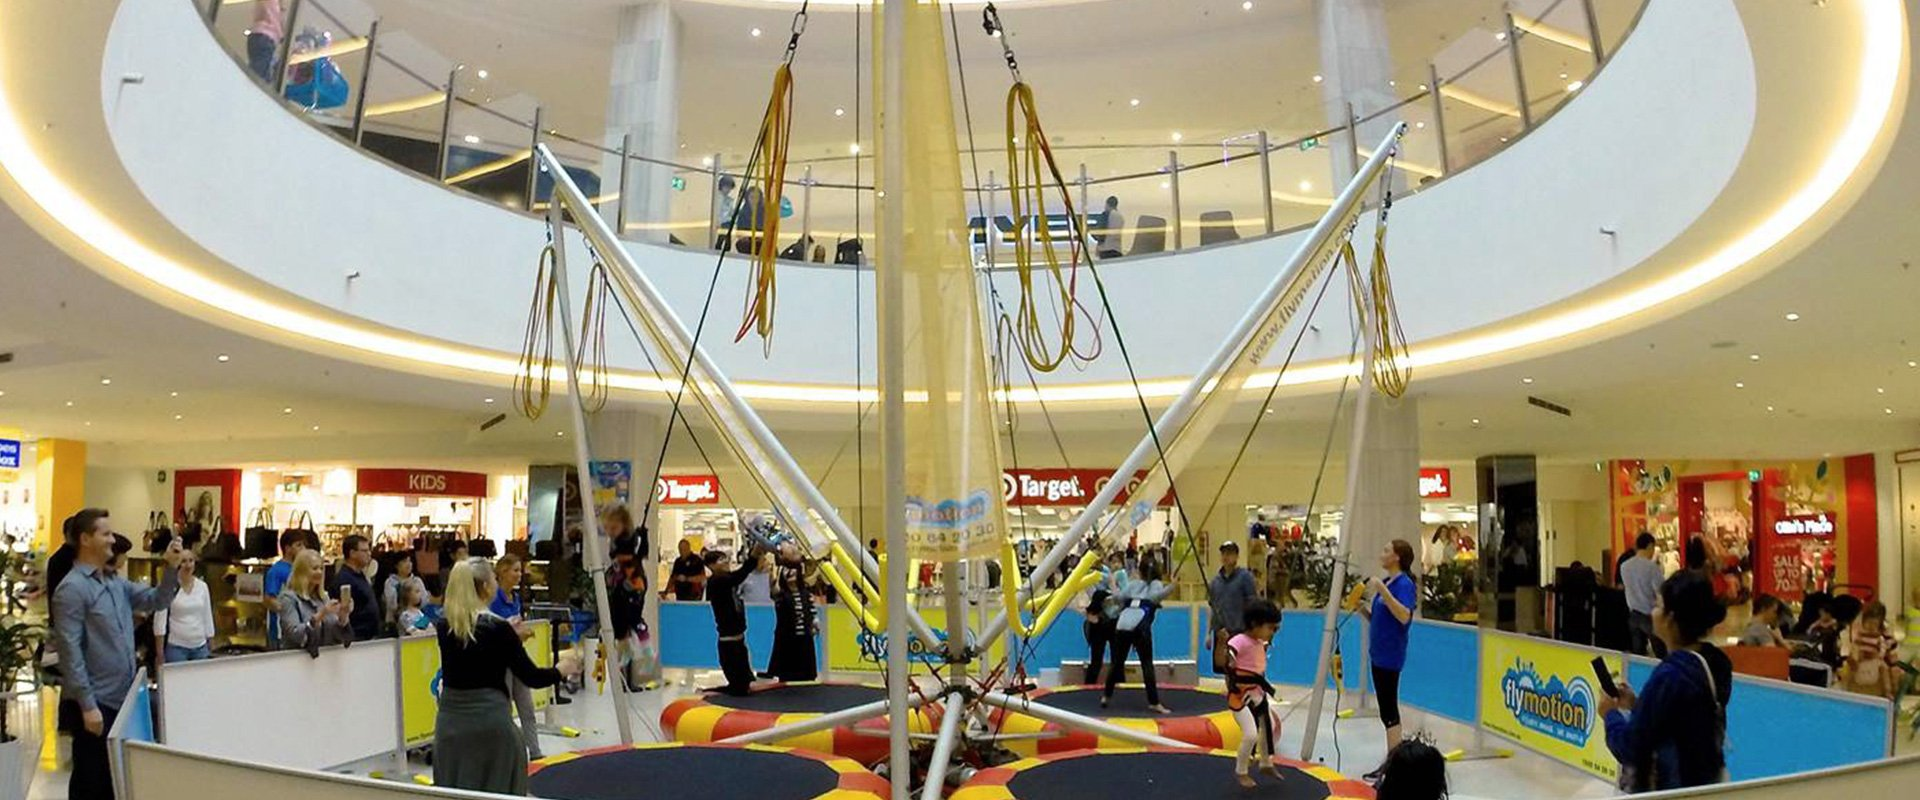 Children enjoying the bungee trampoline in the mall